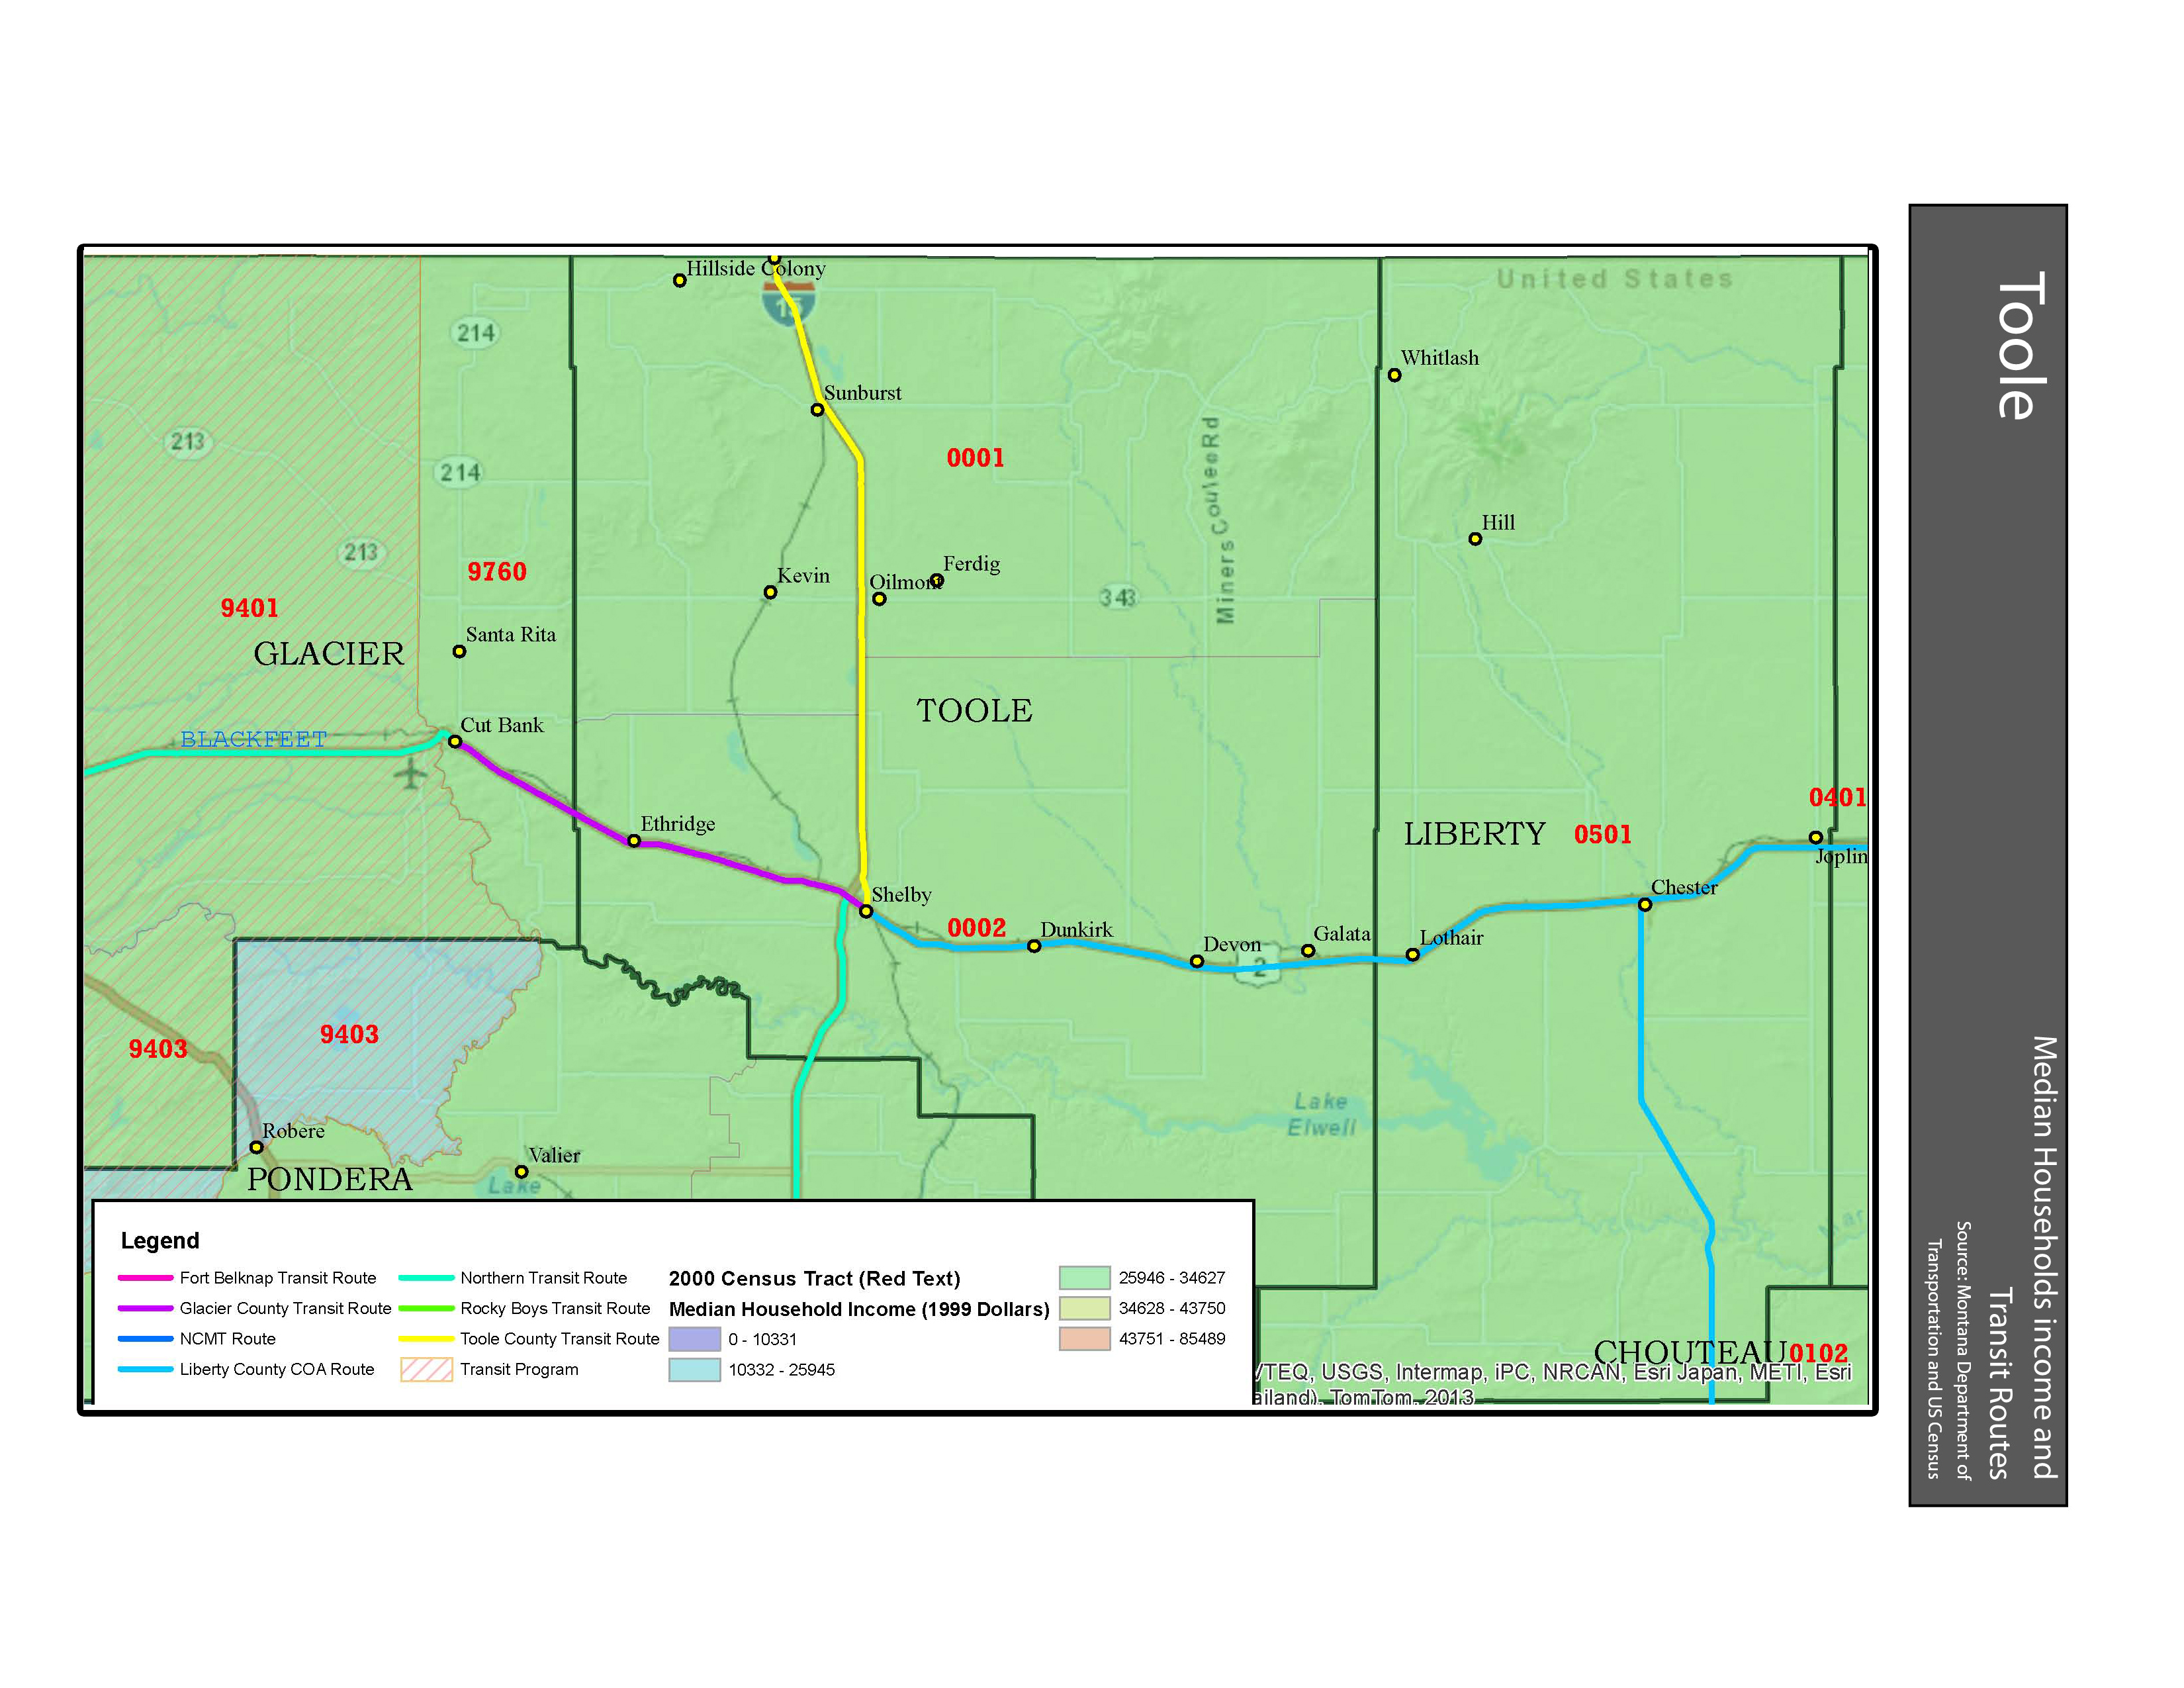 Income and Transit Toole County